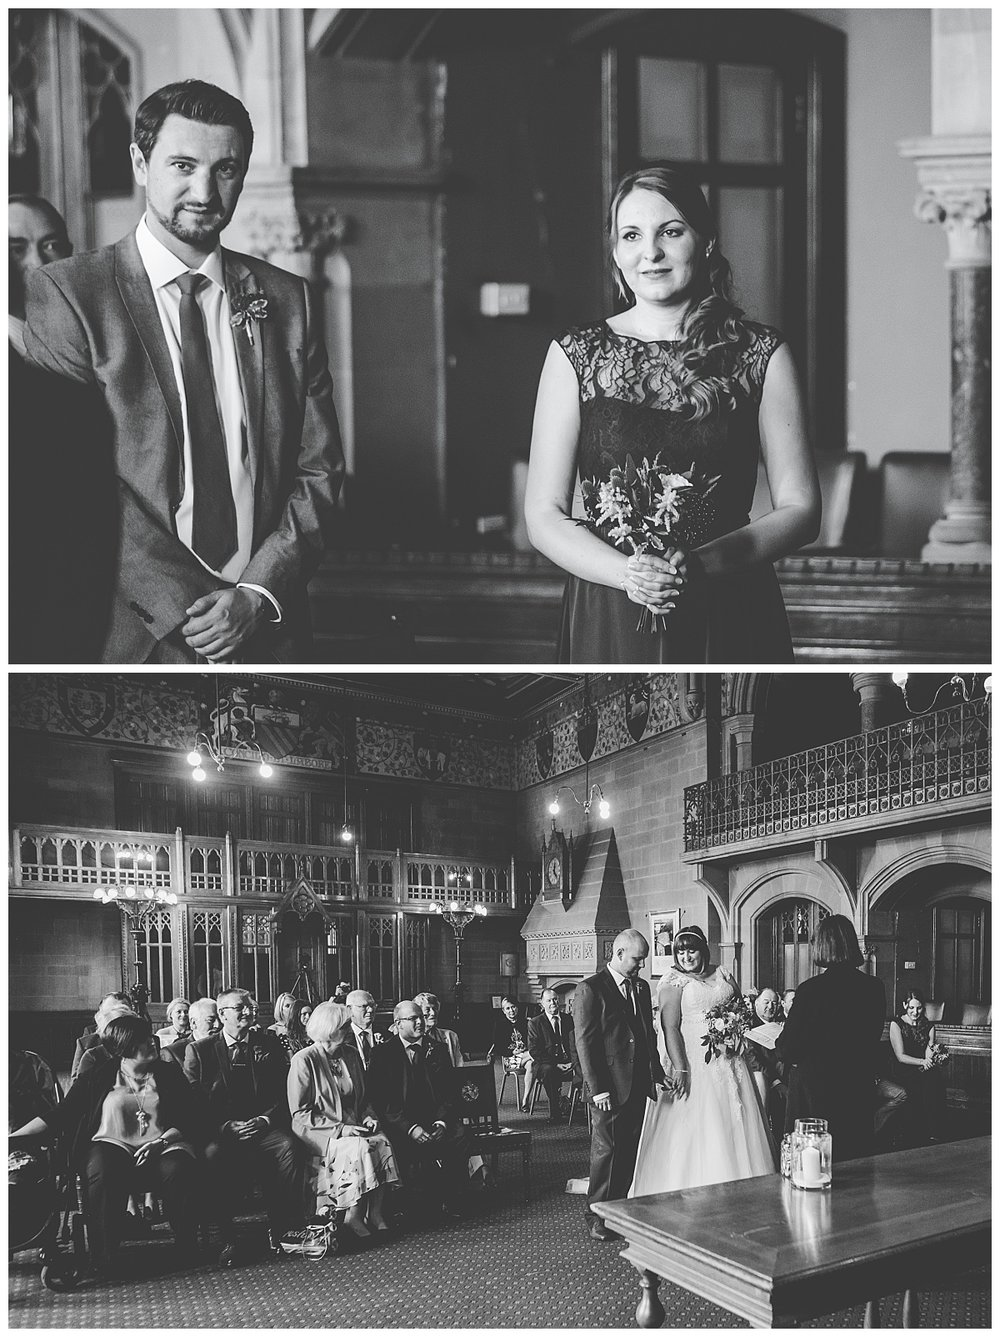 black and white images of wedding guest during the wedding ceremony at manchester town hall